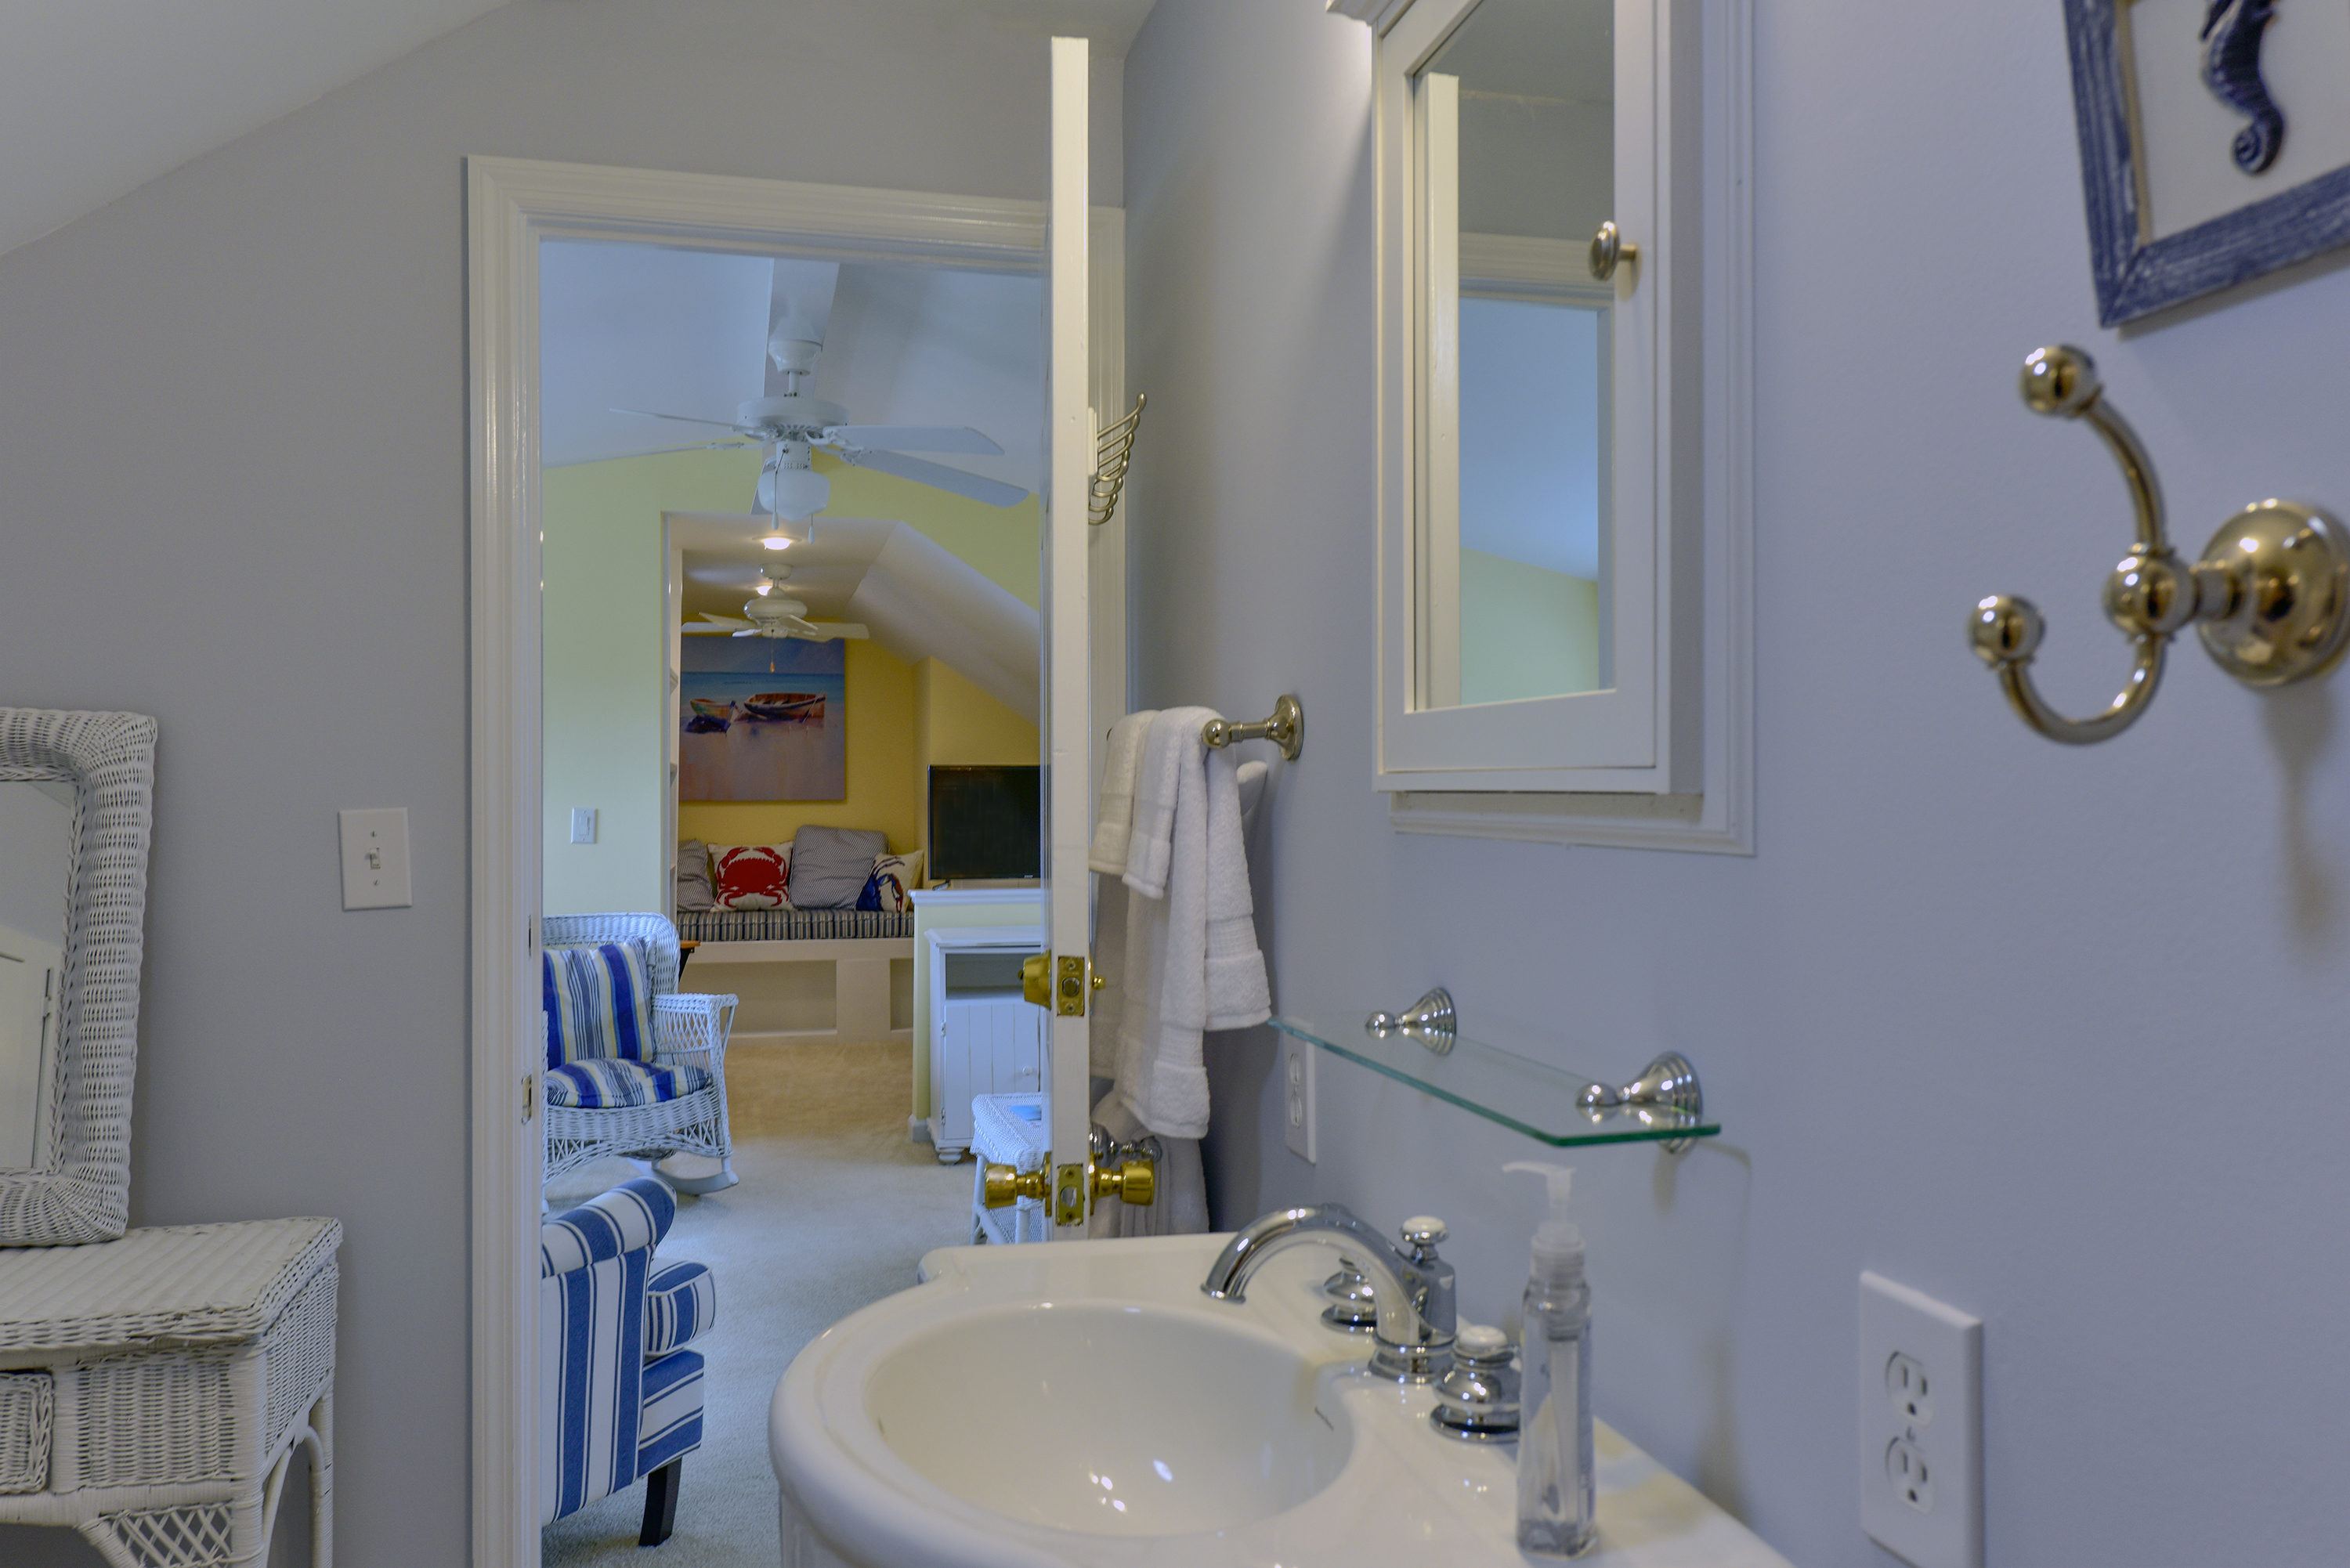 A 3rd full bathroom is up in the loft.  There is a tiled shower and a porthole allowing plenty of sunlight.